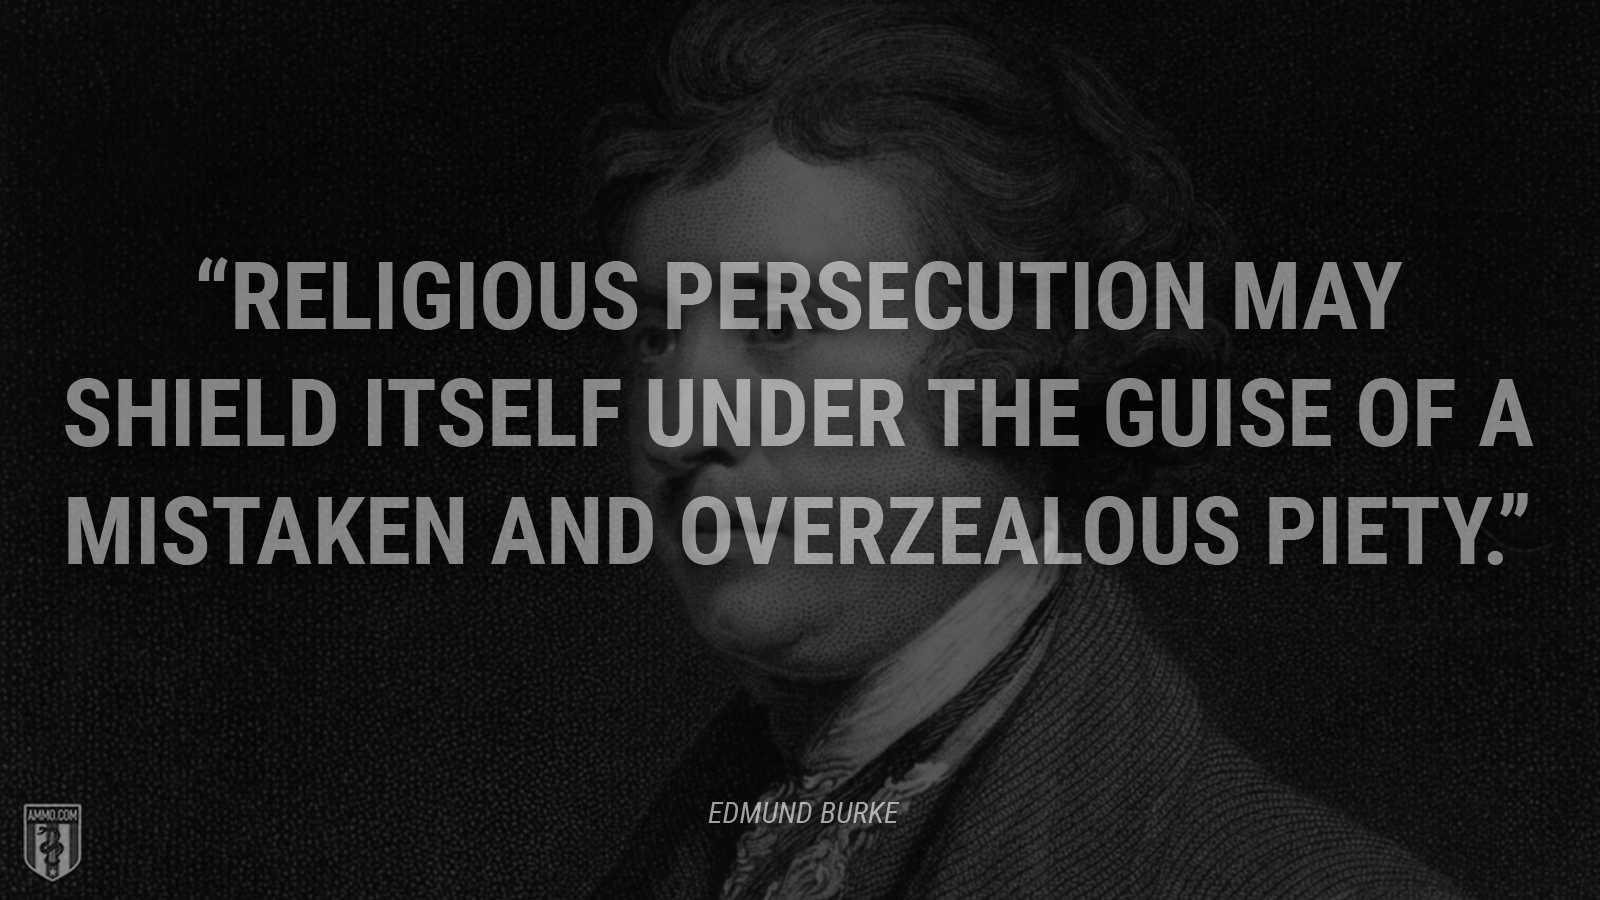 """Religious persecution may shield itself under the guise of a mistaken and overzealous piety."" - Edmund Burke"